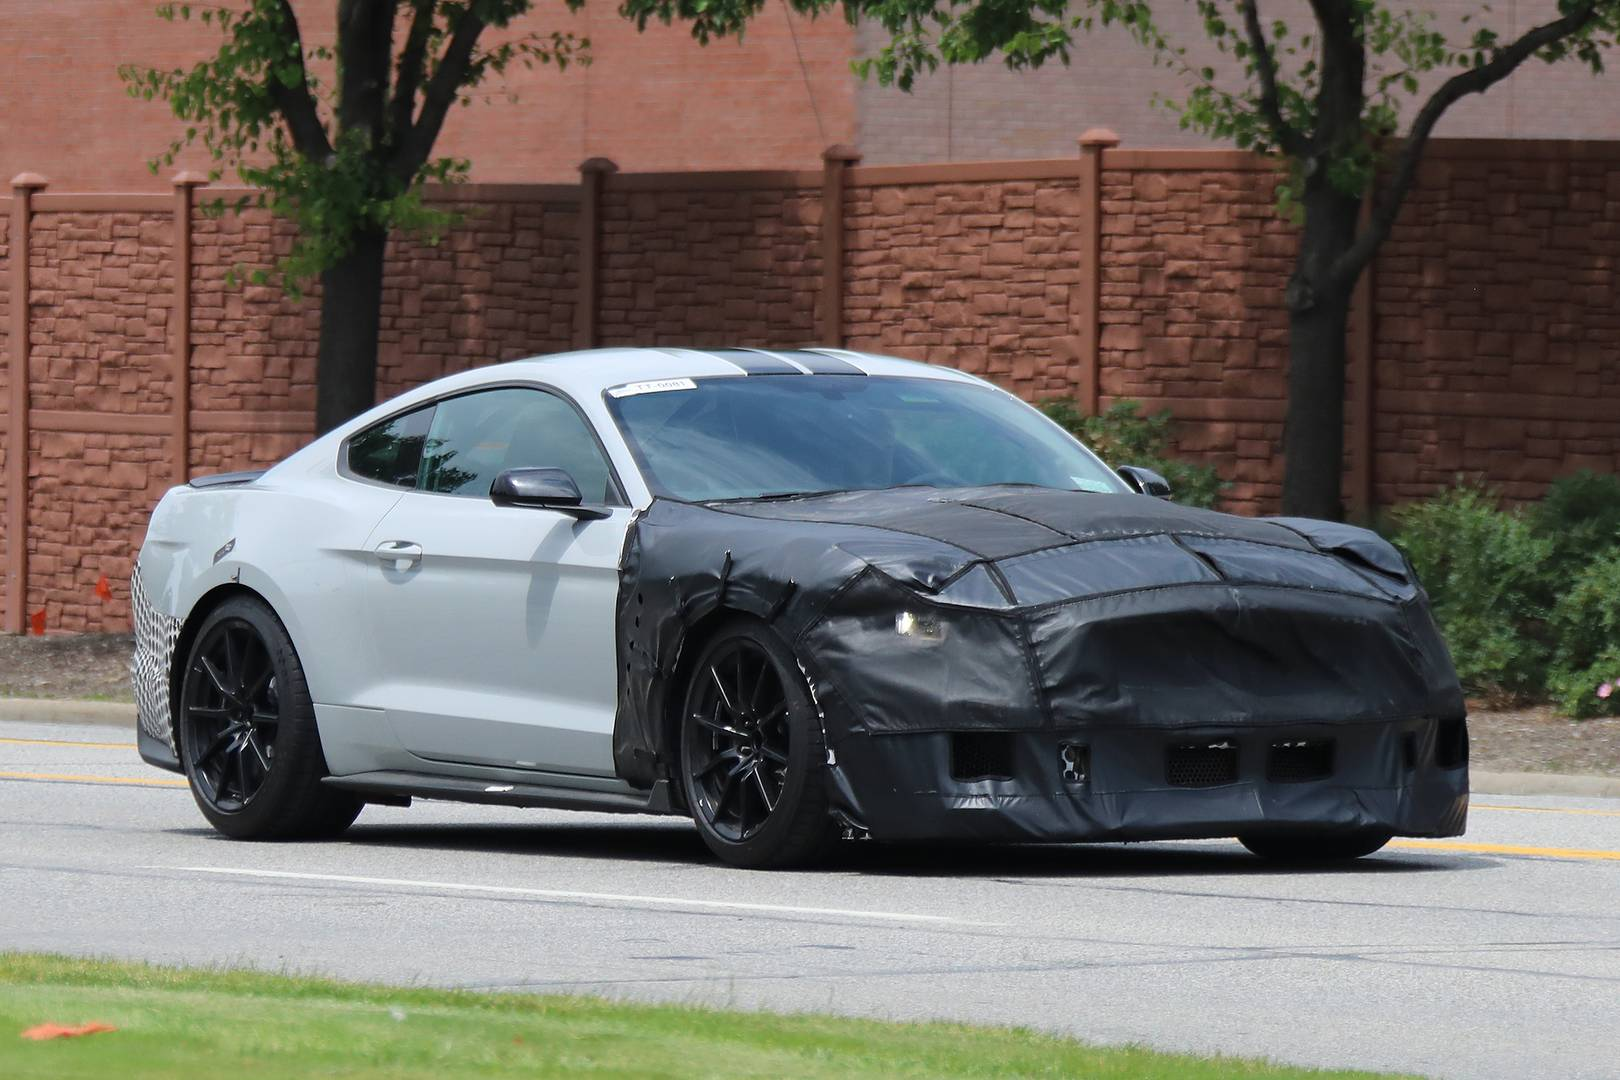 3d60da6890 2019 Ford Mustang Shelby GT500 Spy Shots Emerge - GTspirit